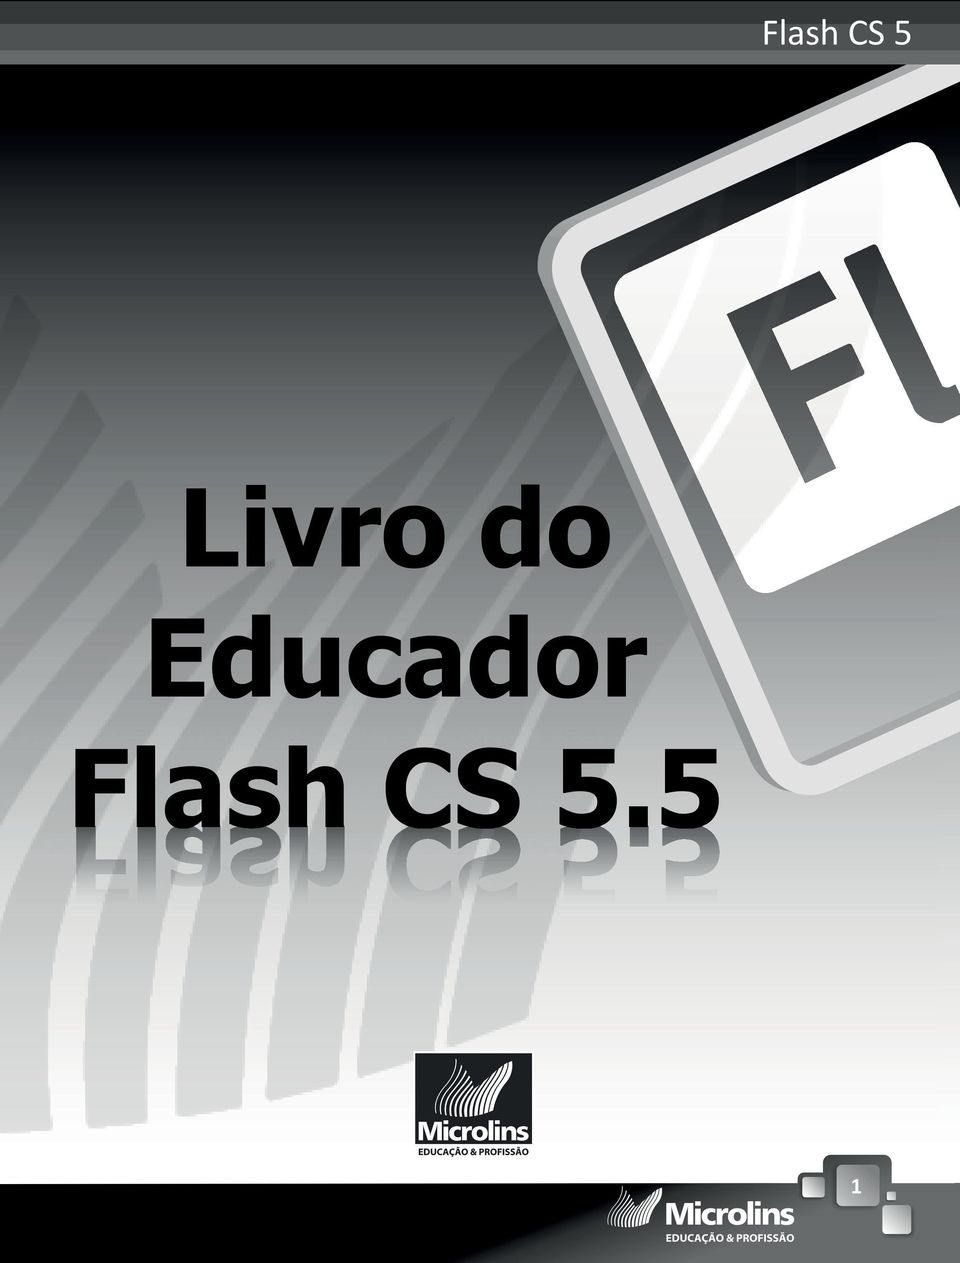 Educador Flash